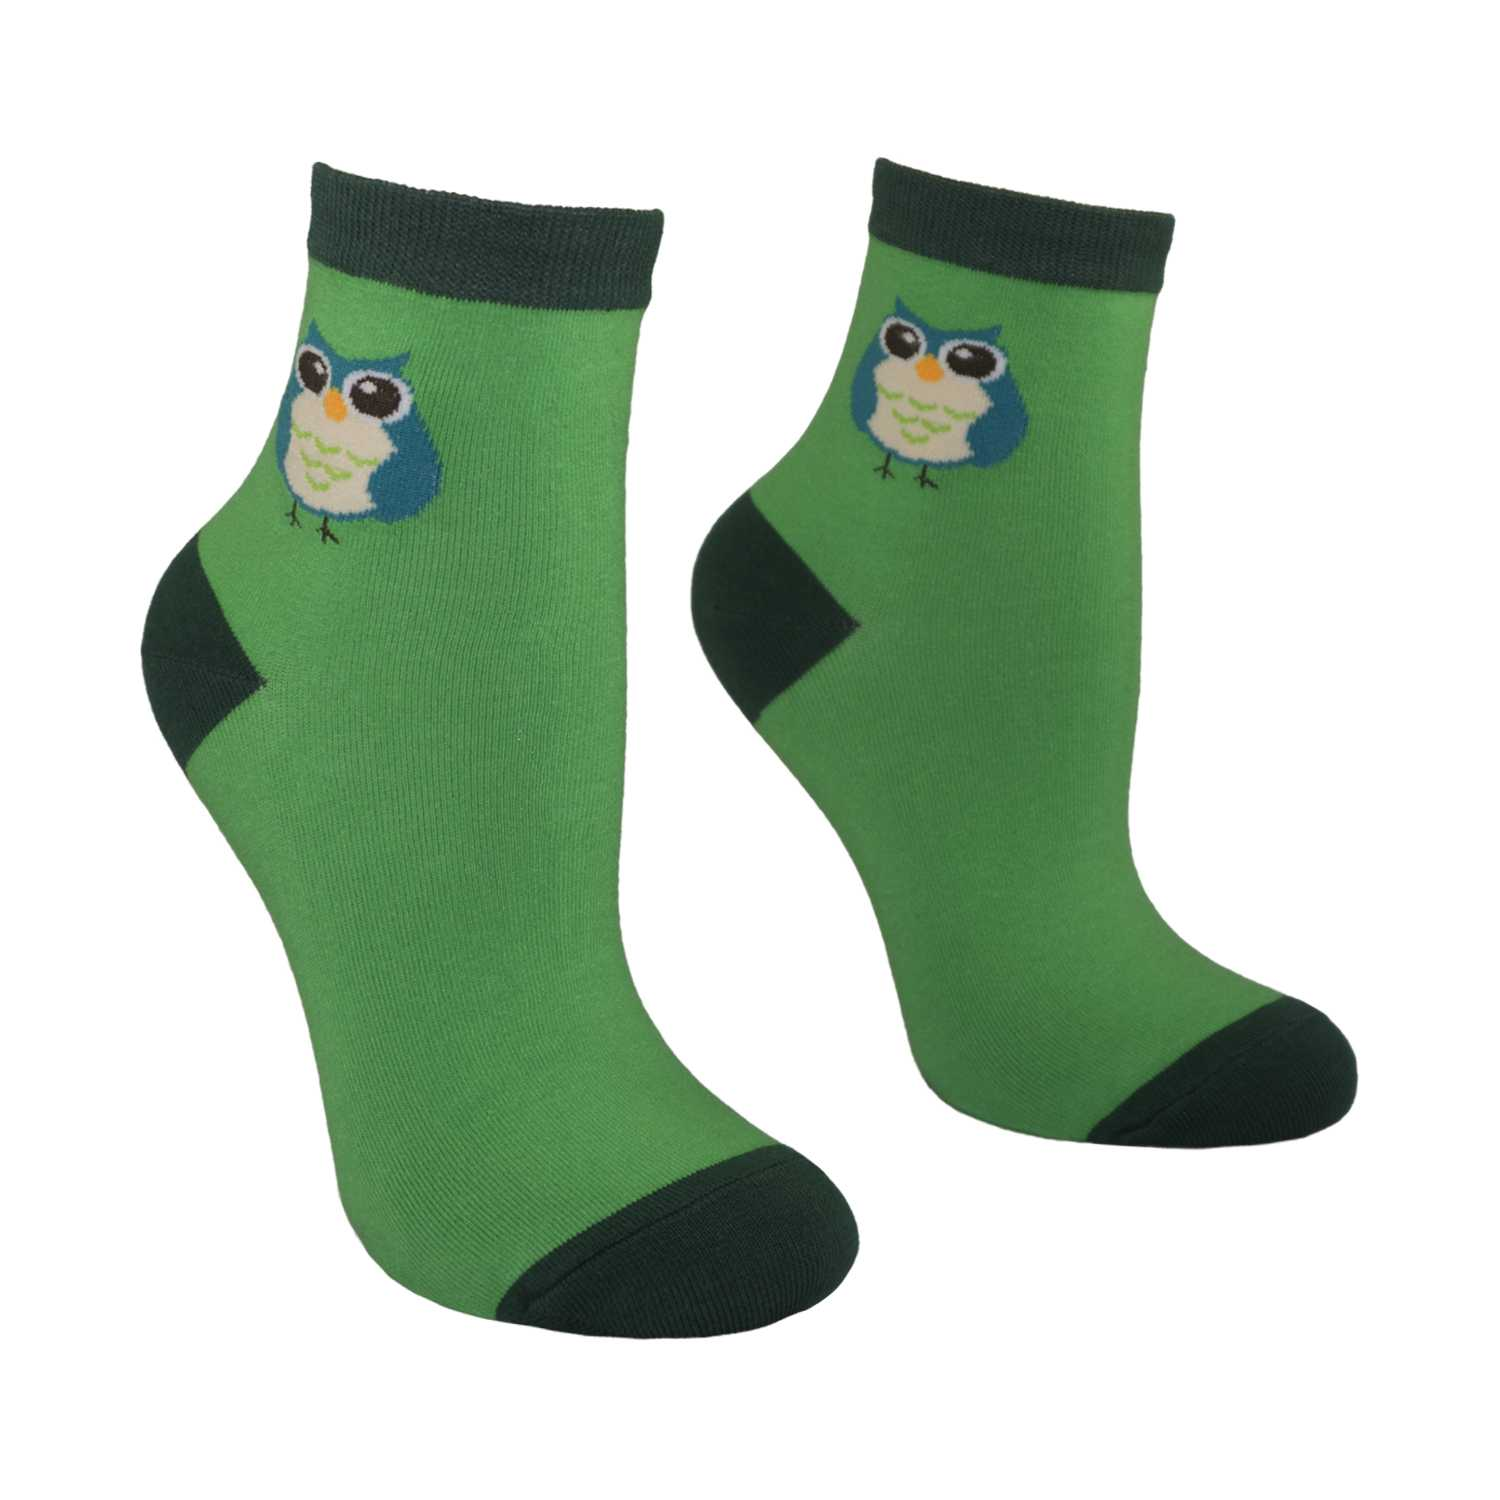 Women's Owl Design Crew Socks - Green - Zestique